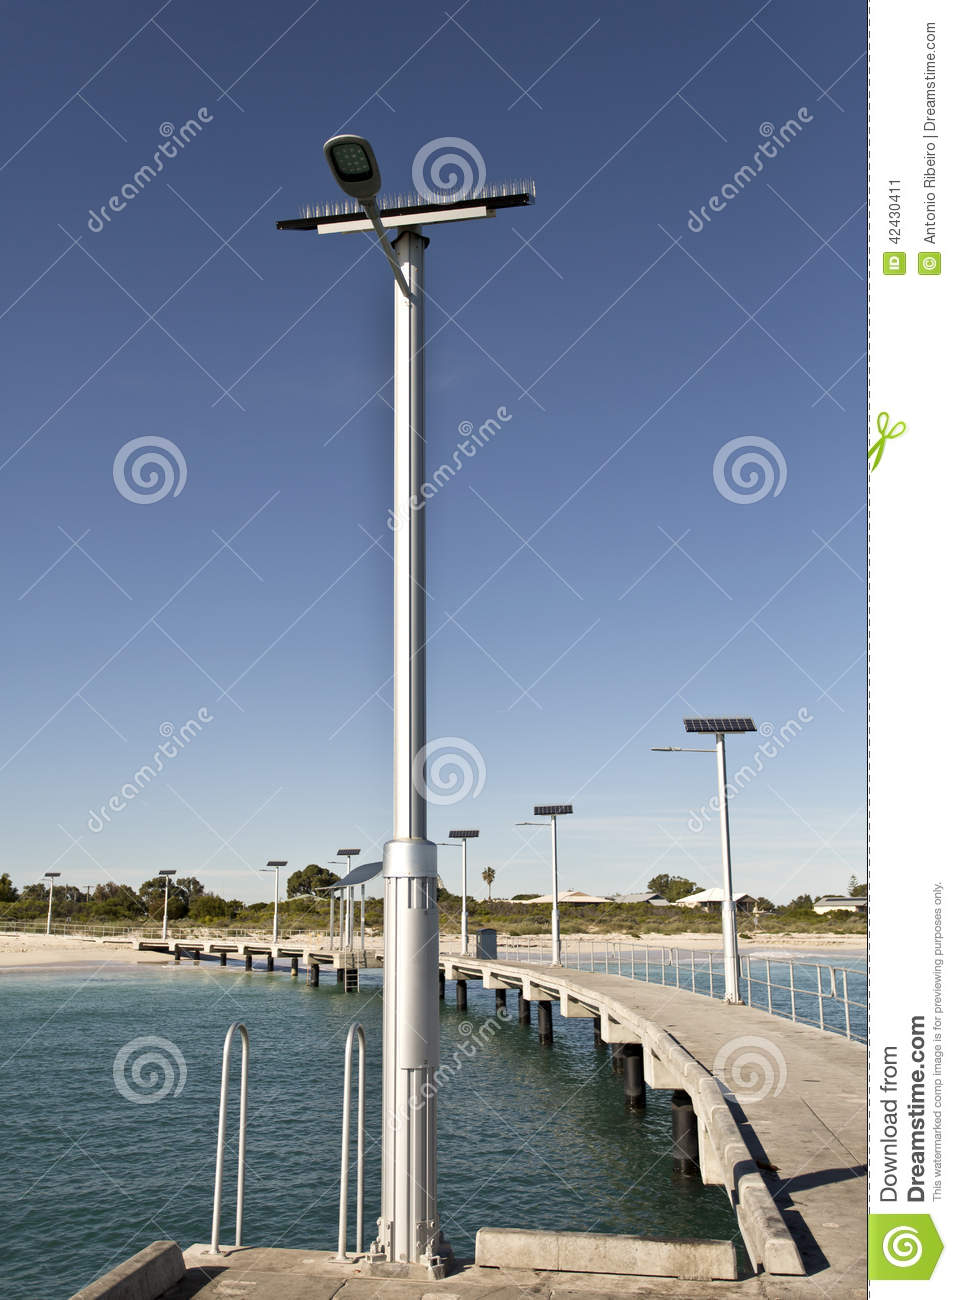 Solar Street Lamppost stock image  Image of light, town